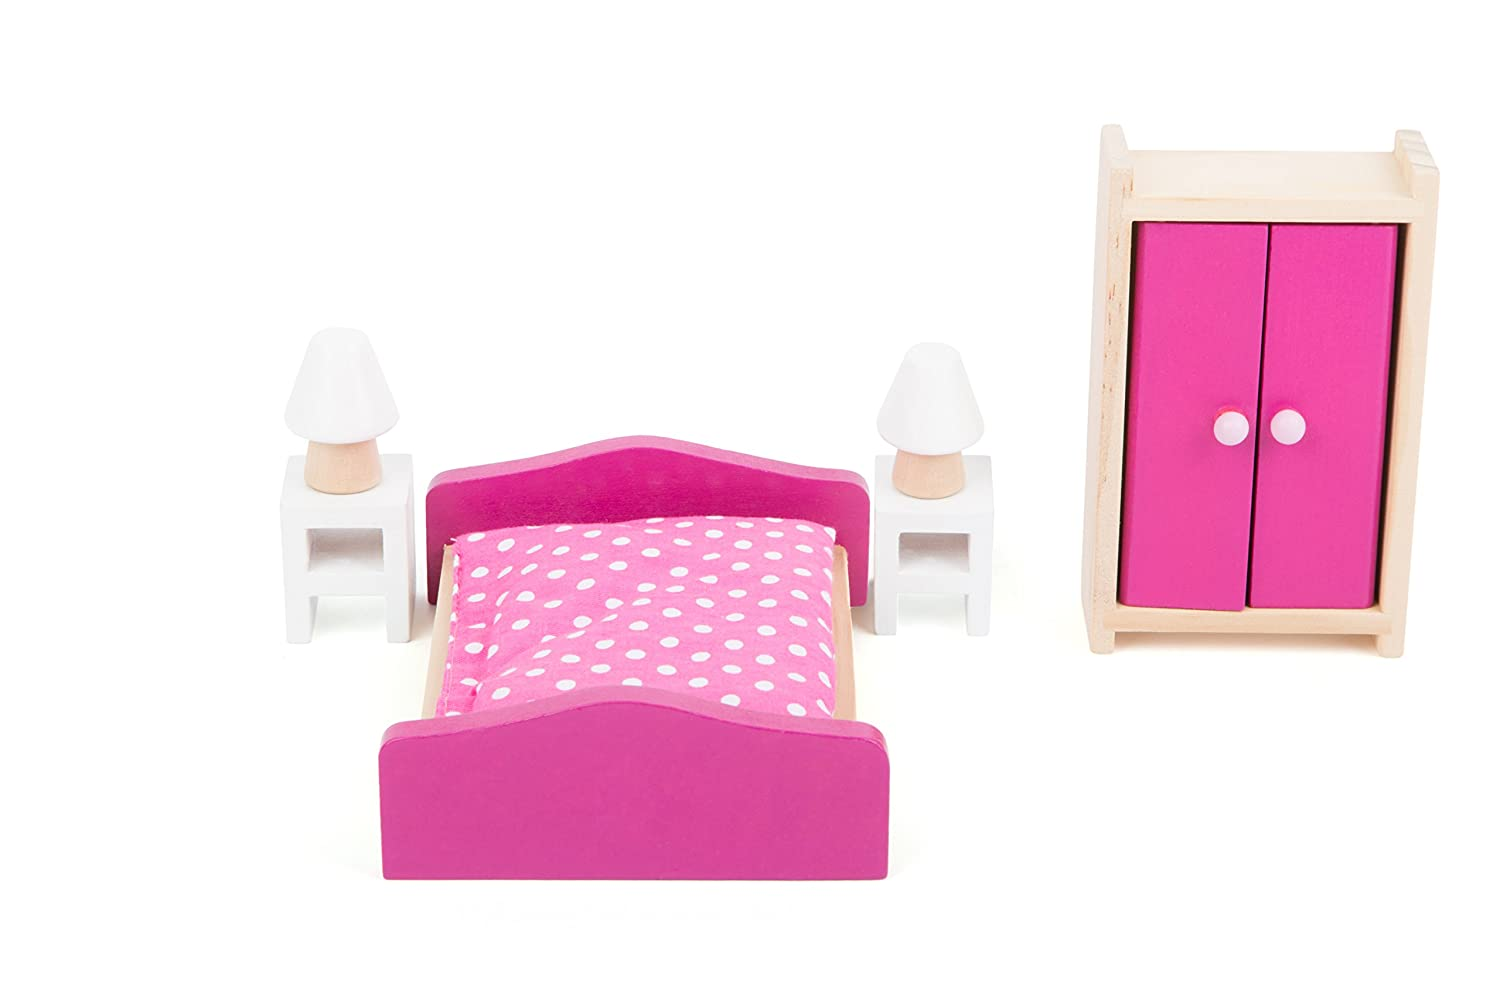 Double Bed Small Foot 10874 Wooden Furniture for The Living Room in The Dollhouse Bedside Tables incl Suitable Ideal Doll Accessories for Children from 3 Years and up Lamps and Wardrobe